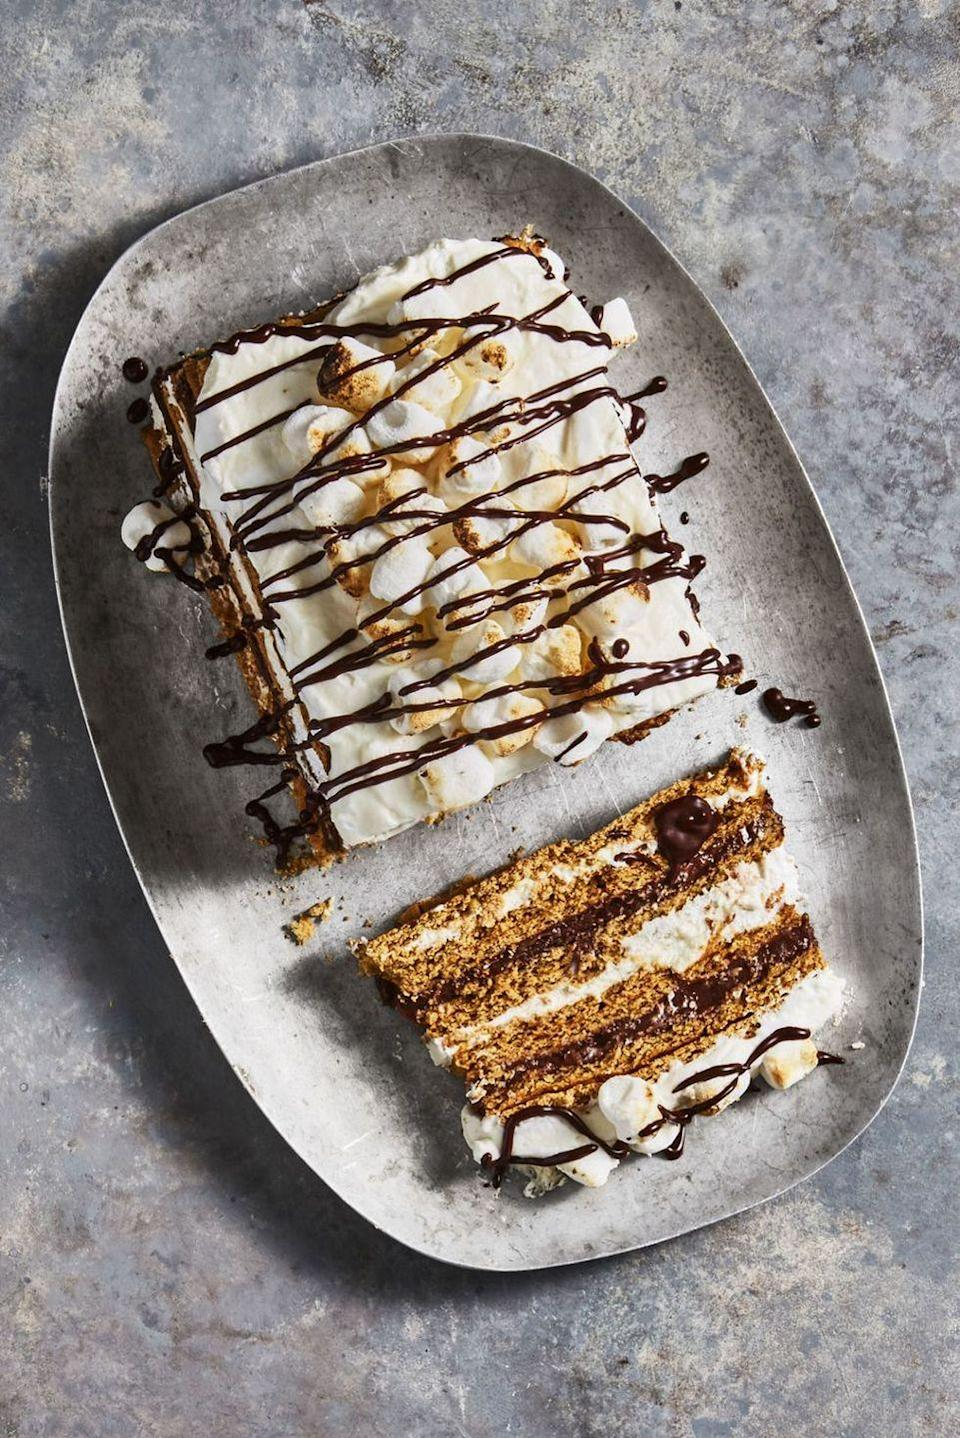 """<p>Bring the campfire favorite inside! This no-bake """"cake"""" is stacked with layers of grahams, chocolate, and marshmallow cream.</p><p><em><a href=""""https://www.goodhousekeeping.com/food-recipes/dessert/a45720/smores-icebox-cake-recipe/"""" rel=""""nofollow noopener"""" target=""""_blank"""" data-ylk=""""slk:Get the recipe for S'mores Icebox Cake »"""" class=""""link rapid-noclick-resp"""">Get the recipe for S'mores Icebox Cake »</a></em> </p>"""